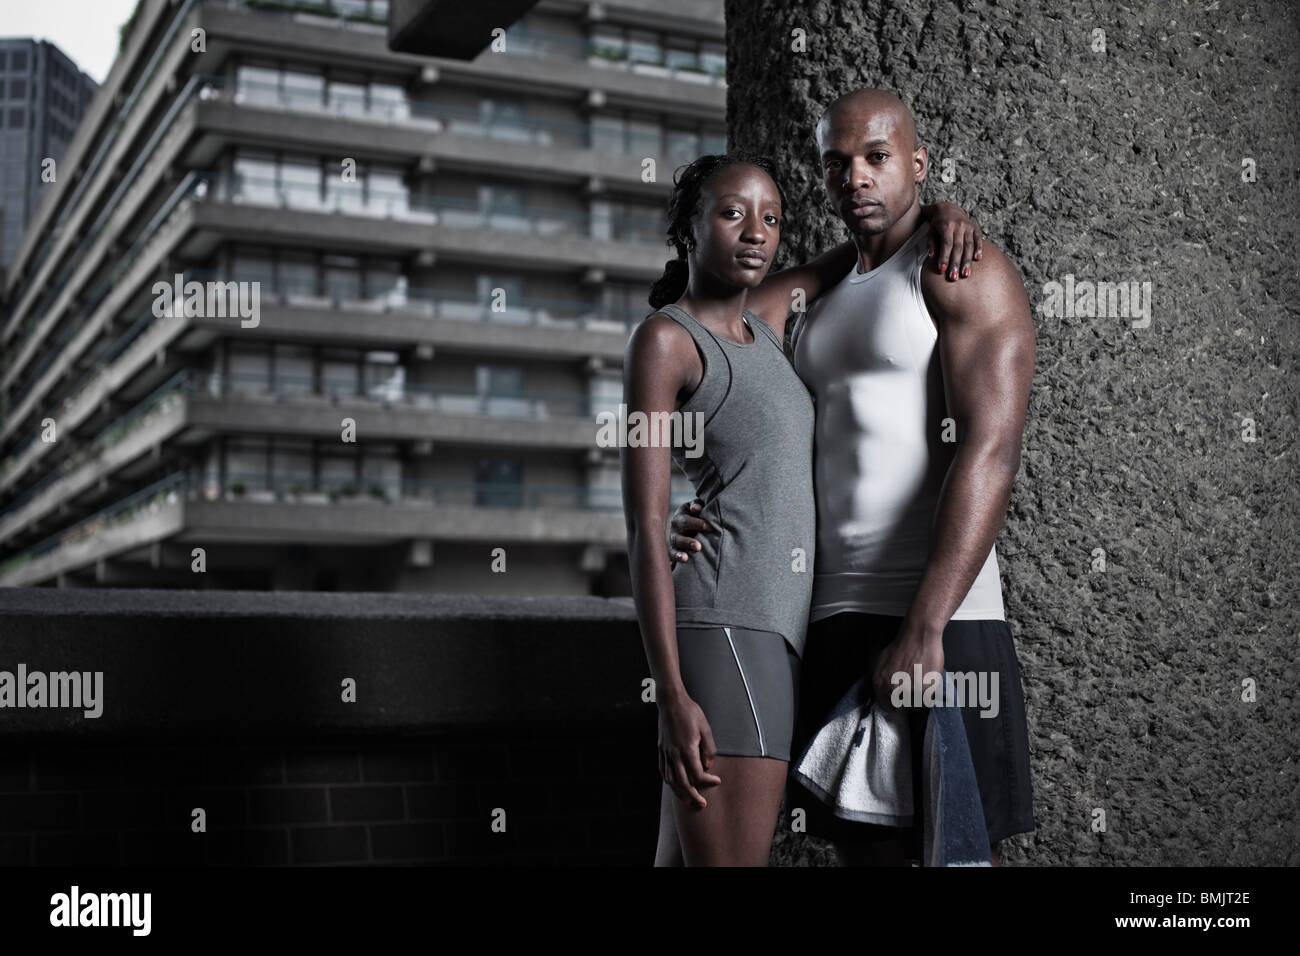 Portrait of athletic man and woman dressed in sportswear on city housing estate - Stock Image